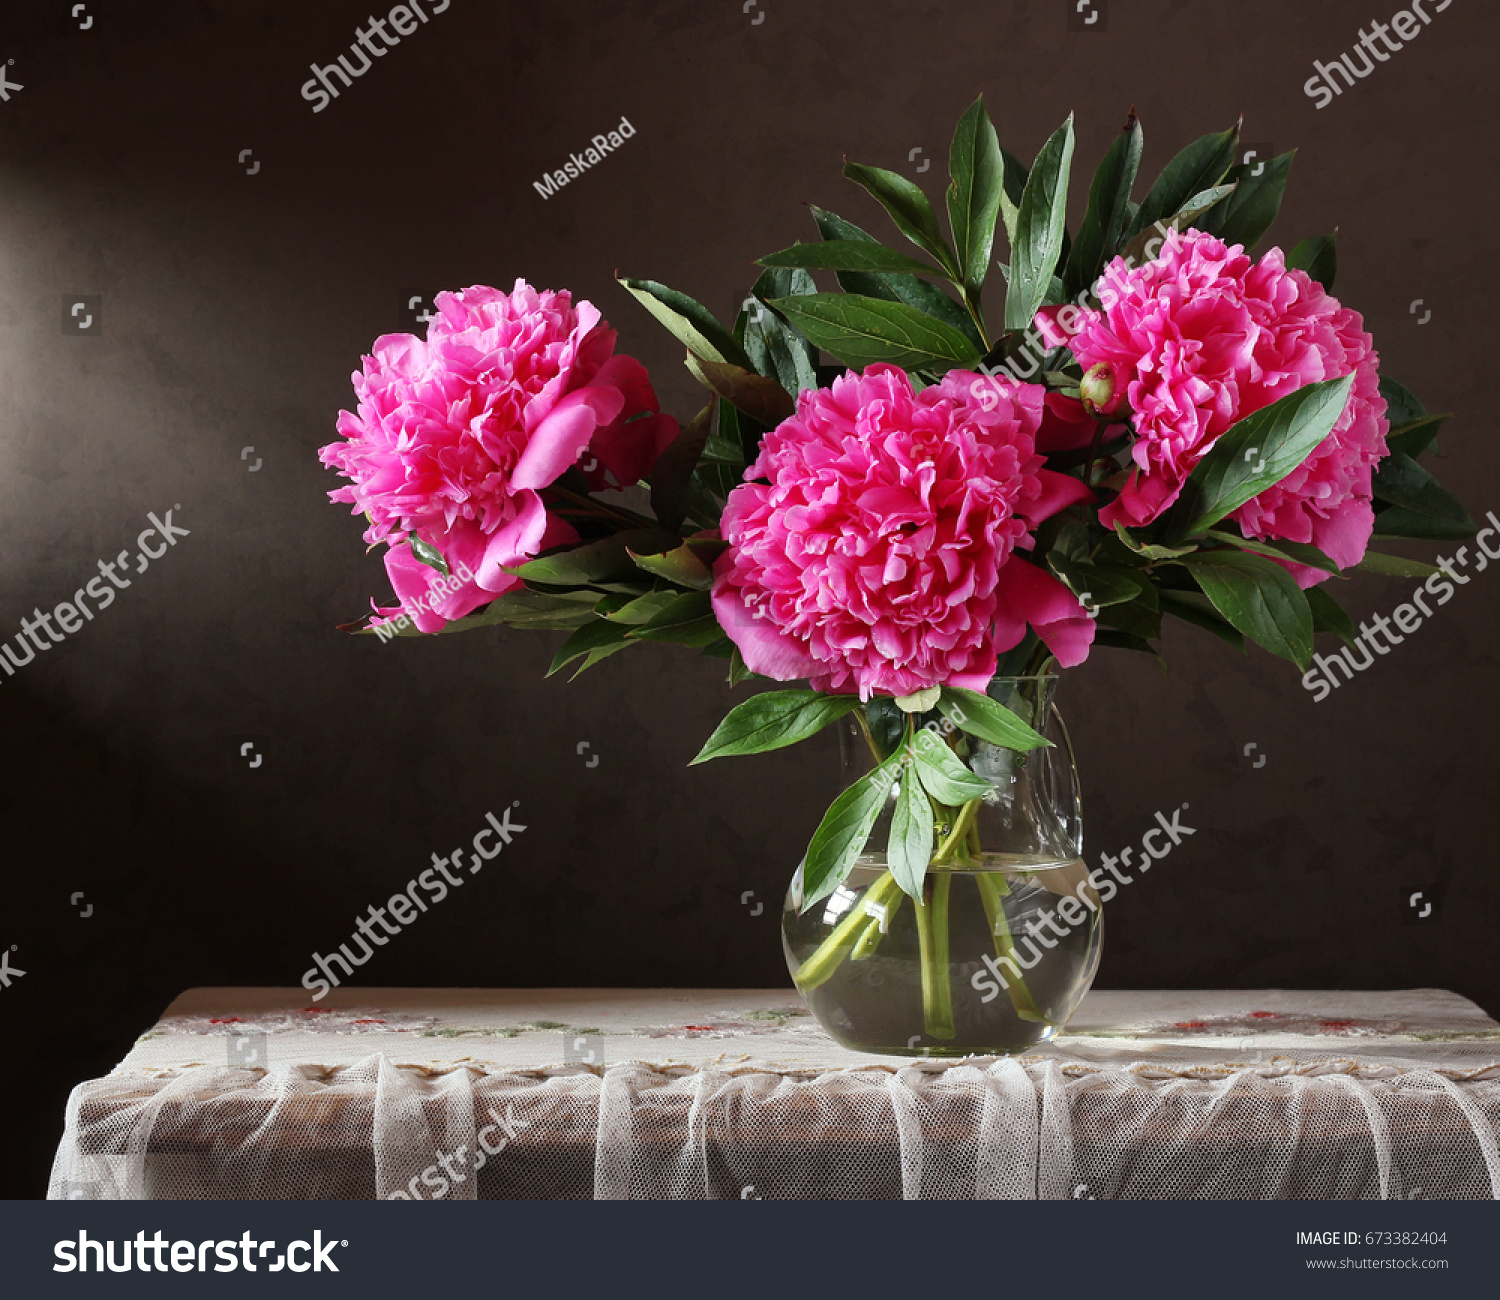 Peonies Bouquet Flowers Vase On Table Stock Photo Edit Now